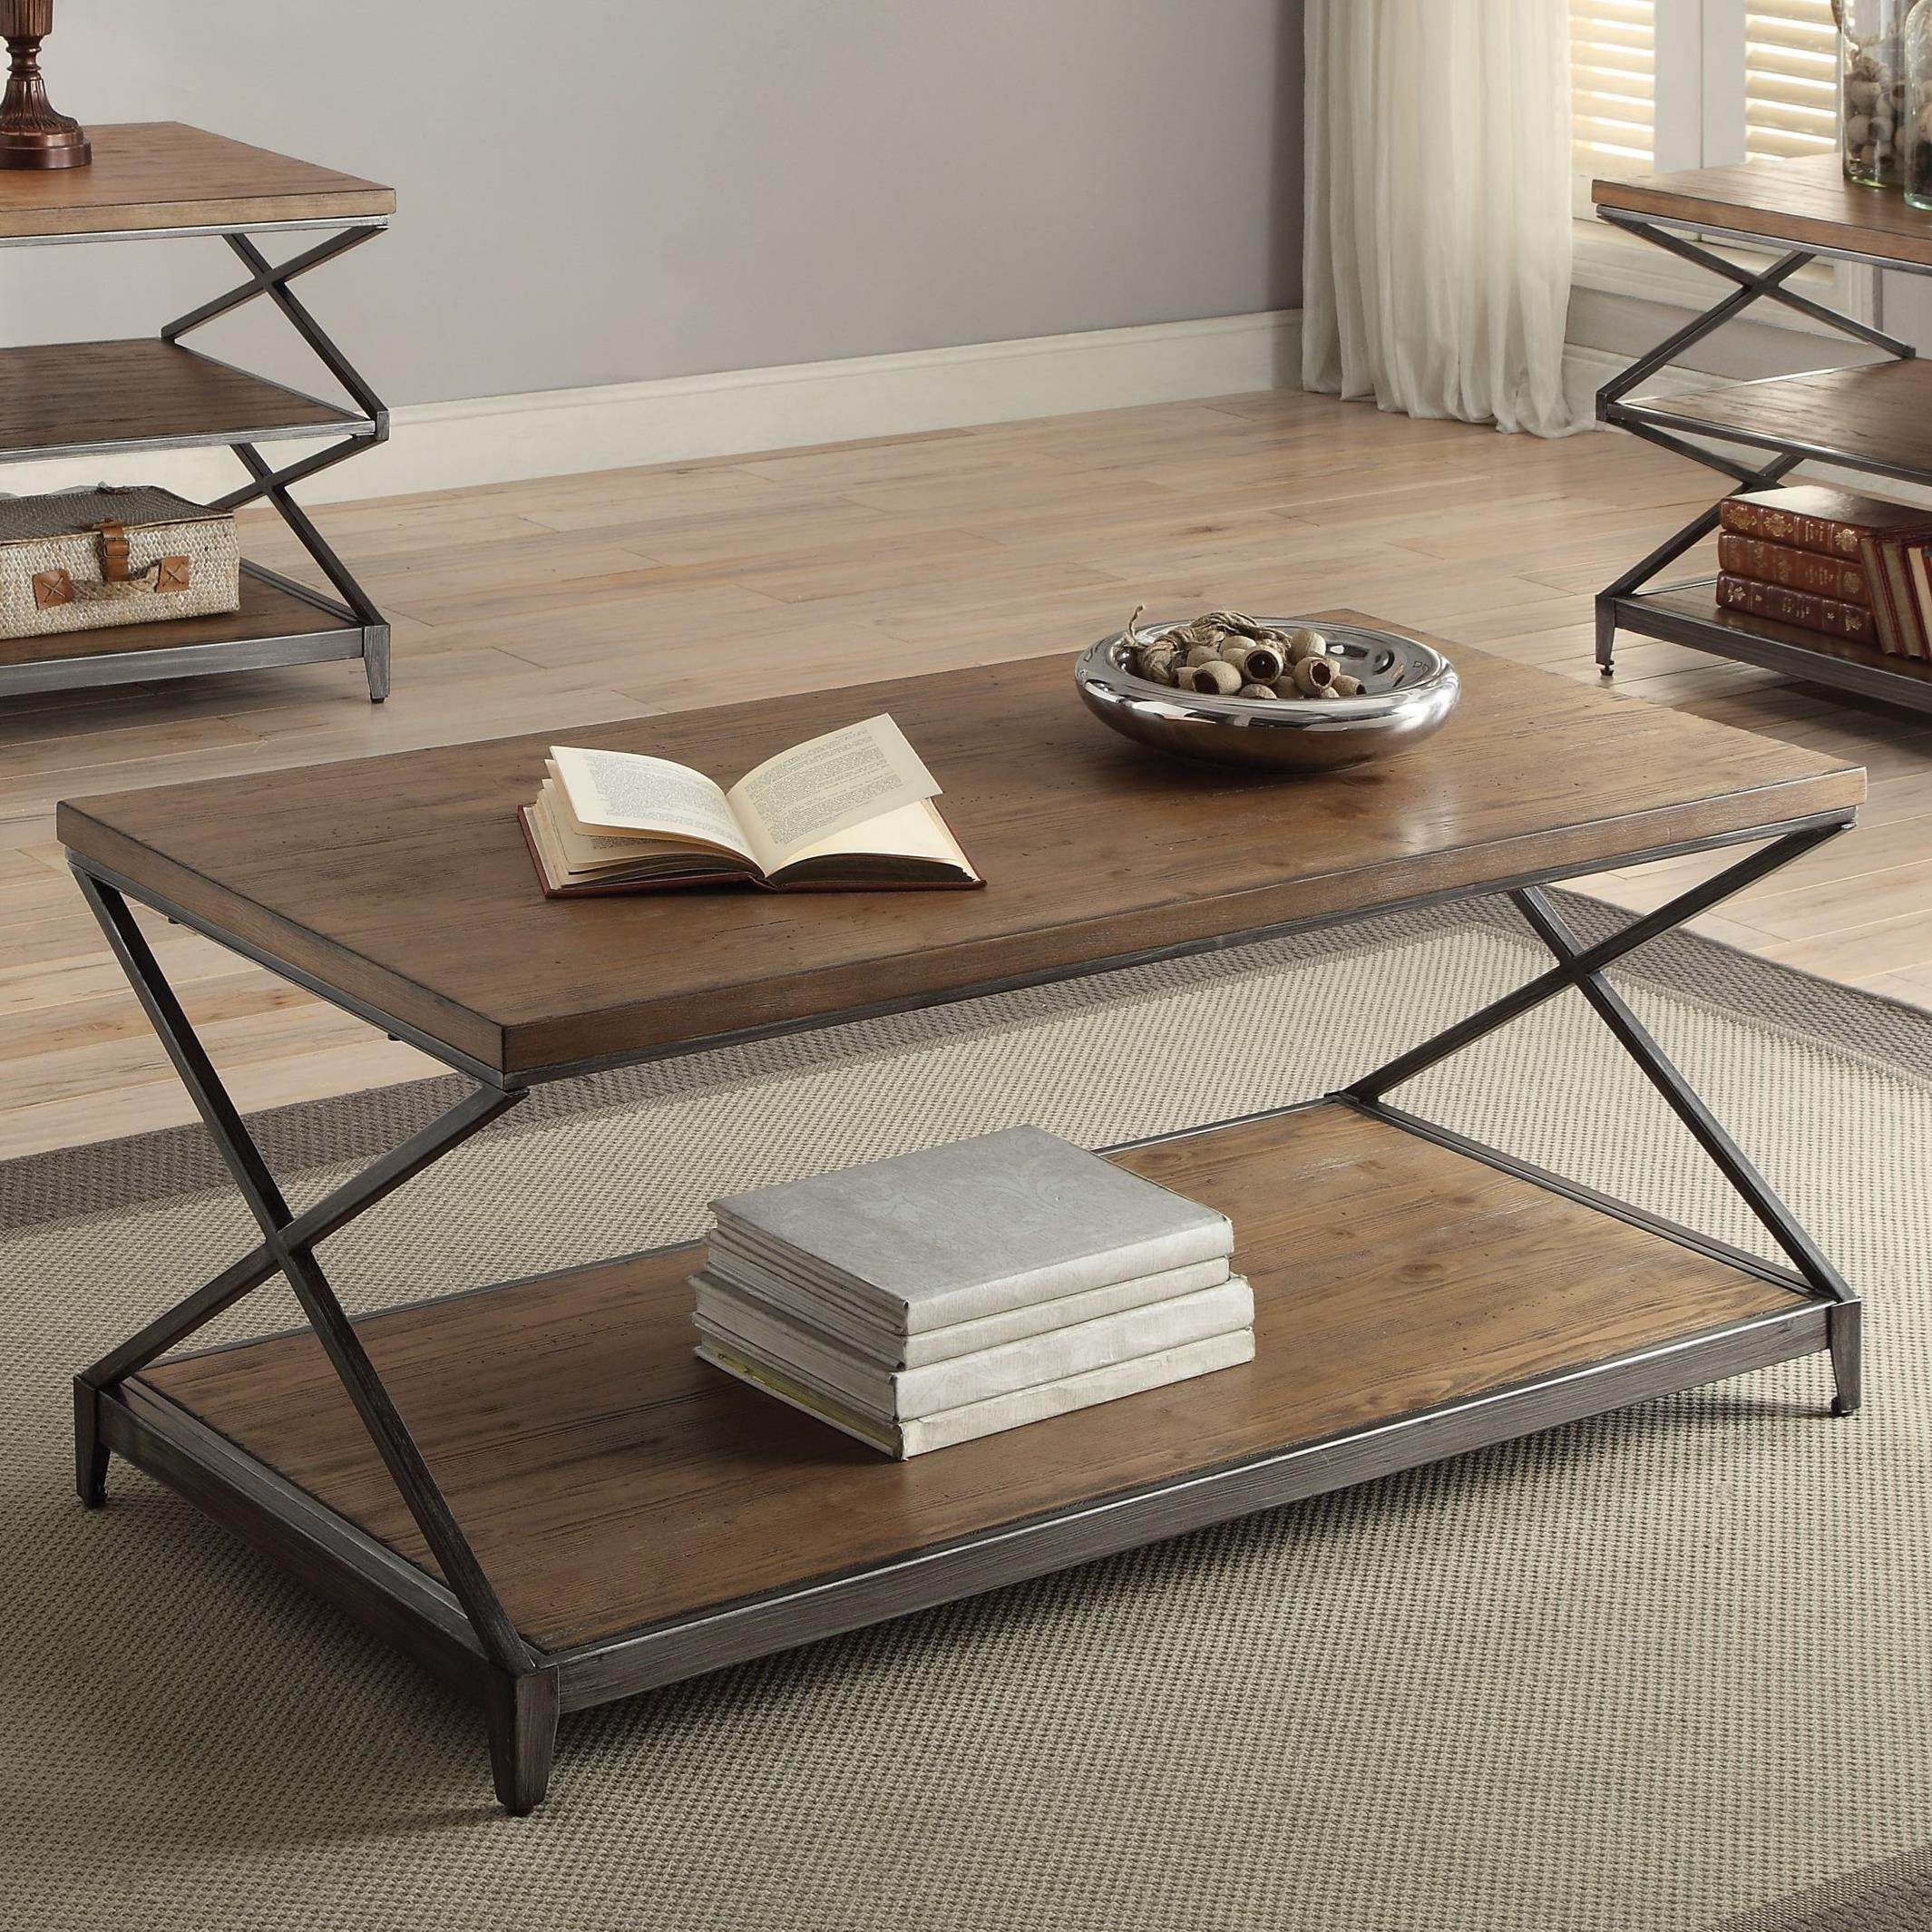 Fabio Coffee Table by Acme Furniture at Dream Home Interiors